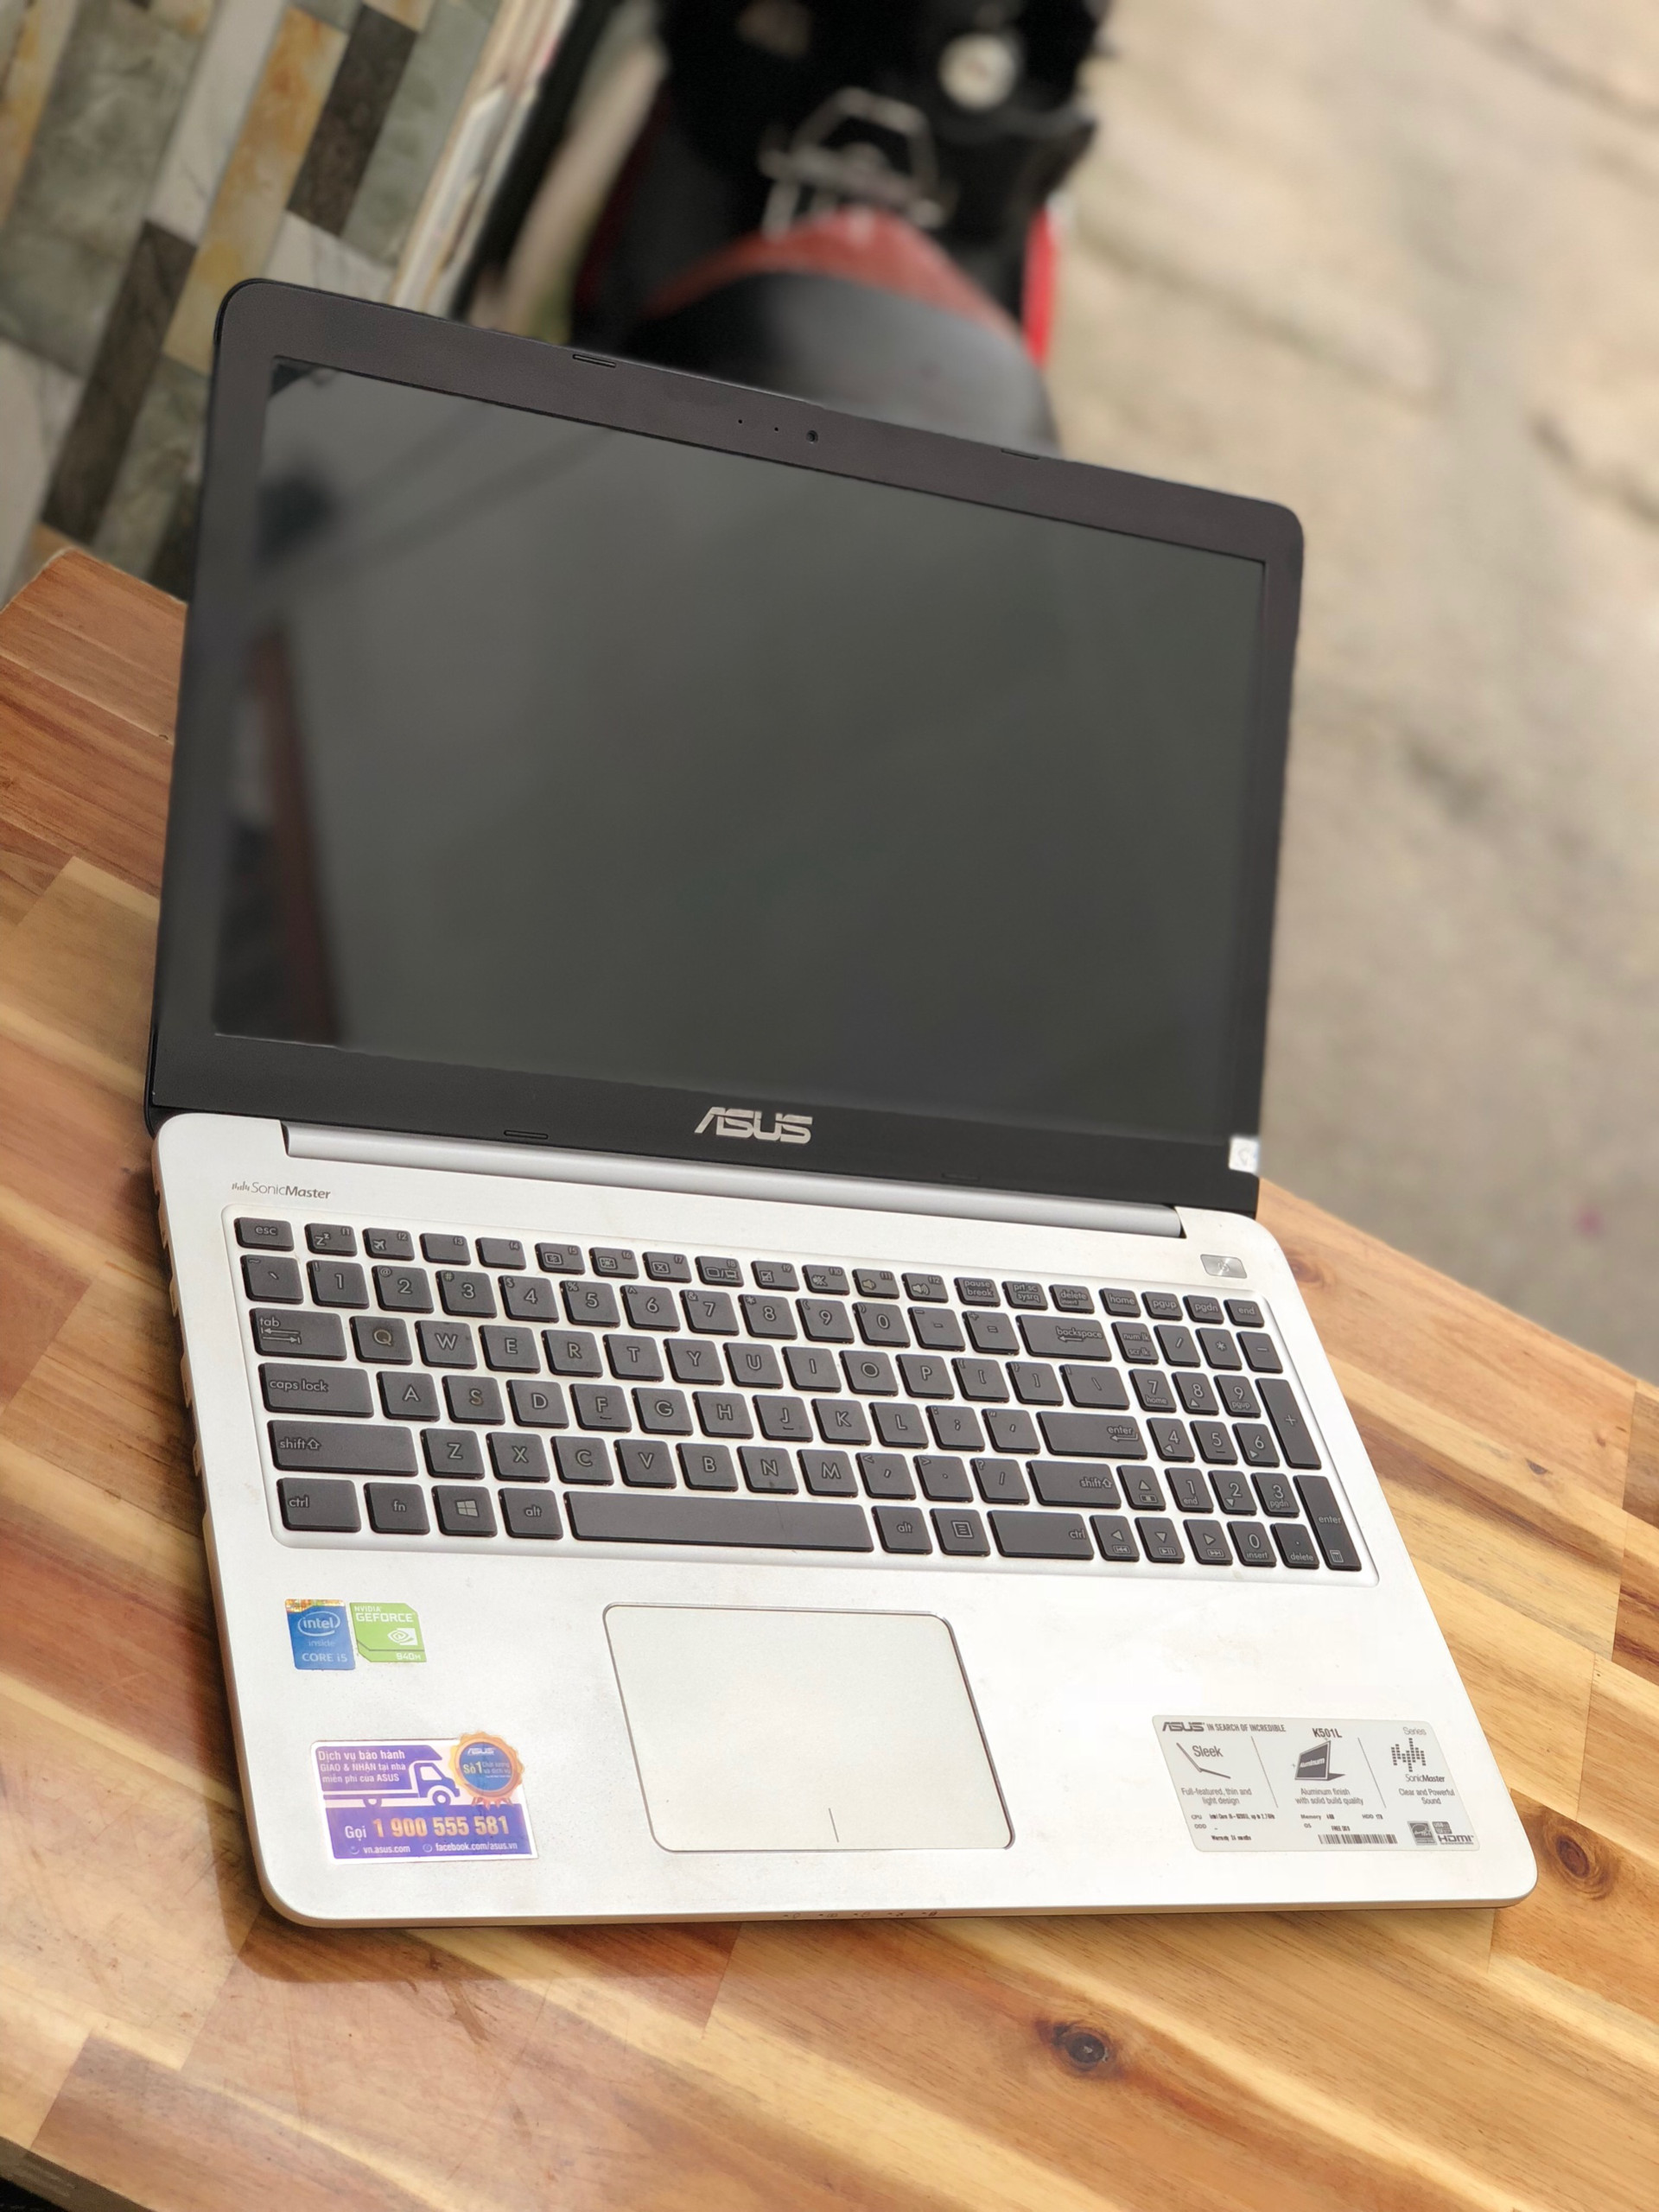 Laptop Asus K501LB, i5 5200U 4G 1000G Vga 940M Full HD Like new Giá rẻ4